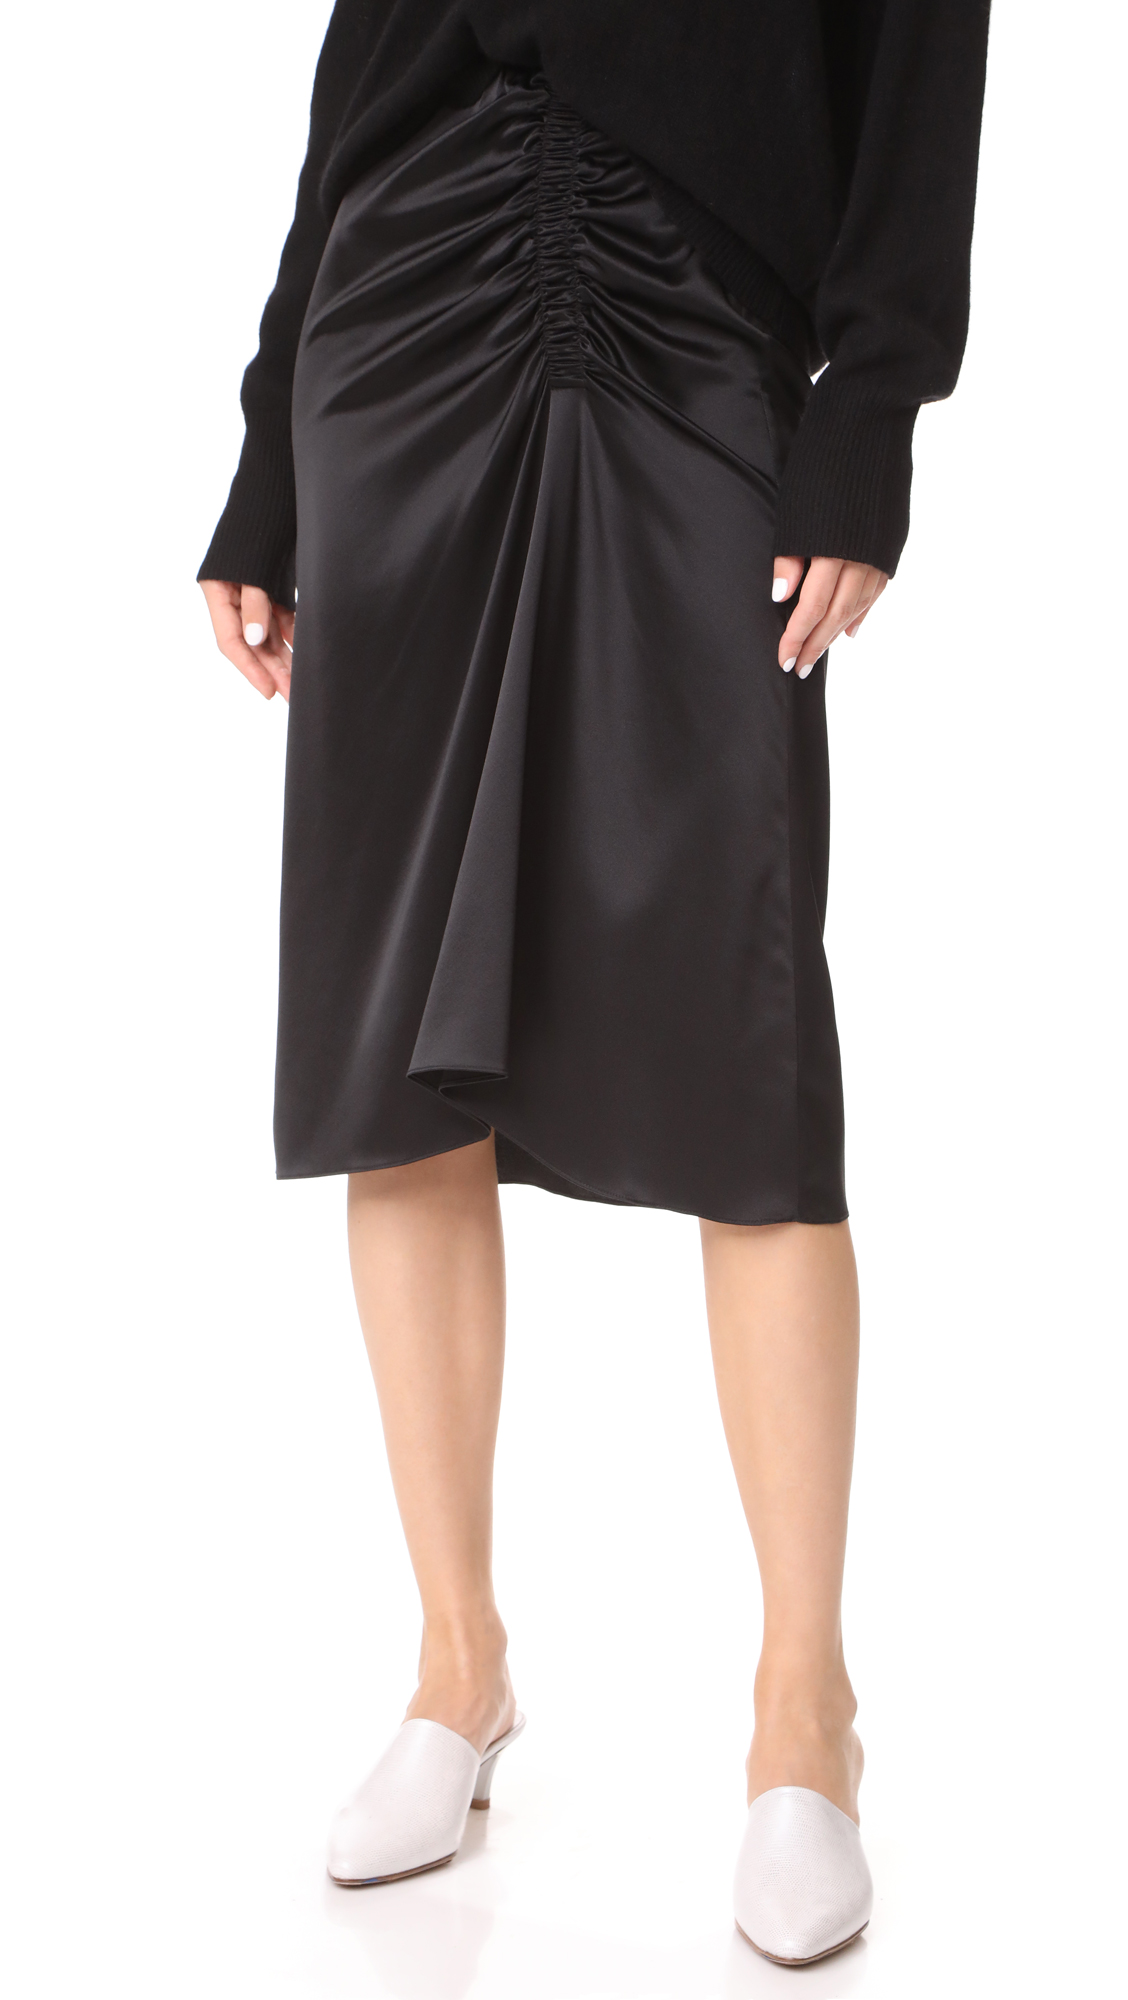 Theory Ruched Satin Skirt - Black